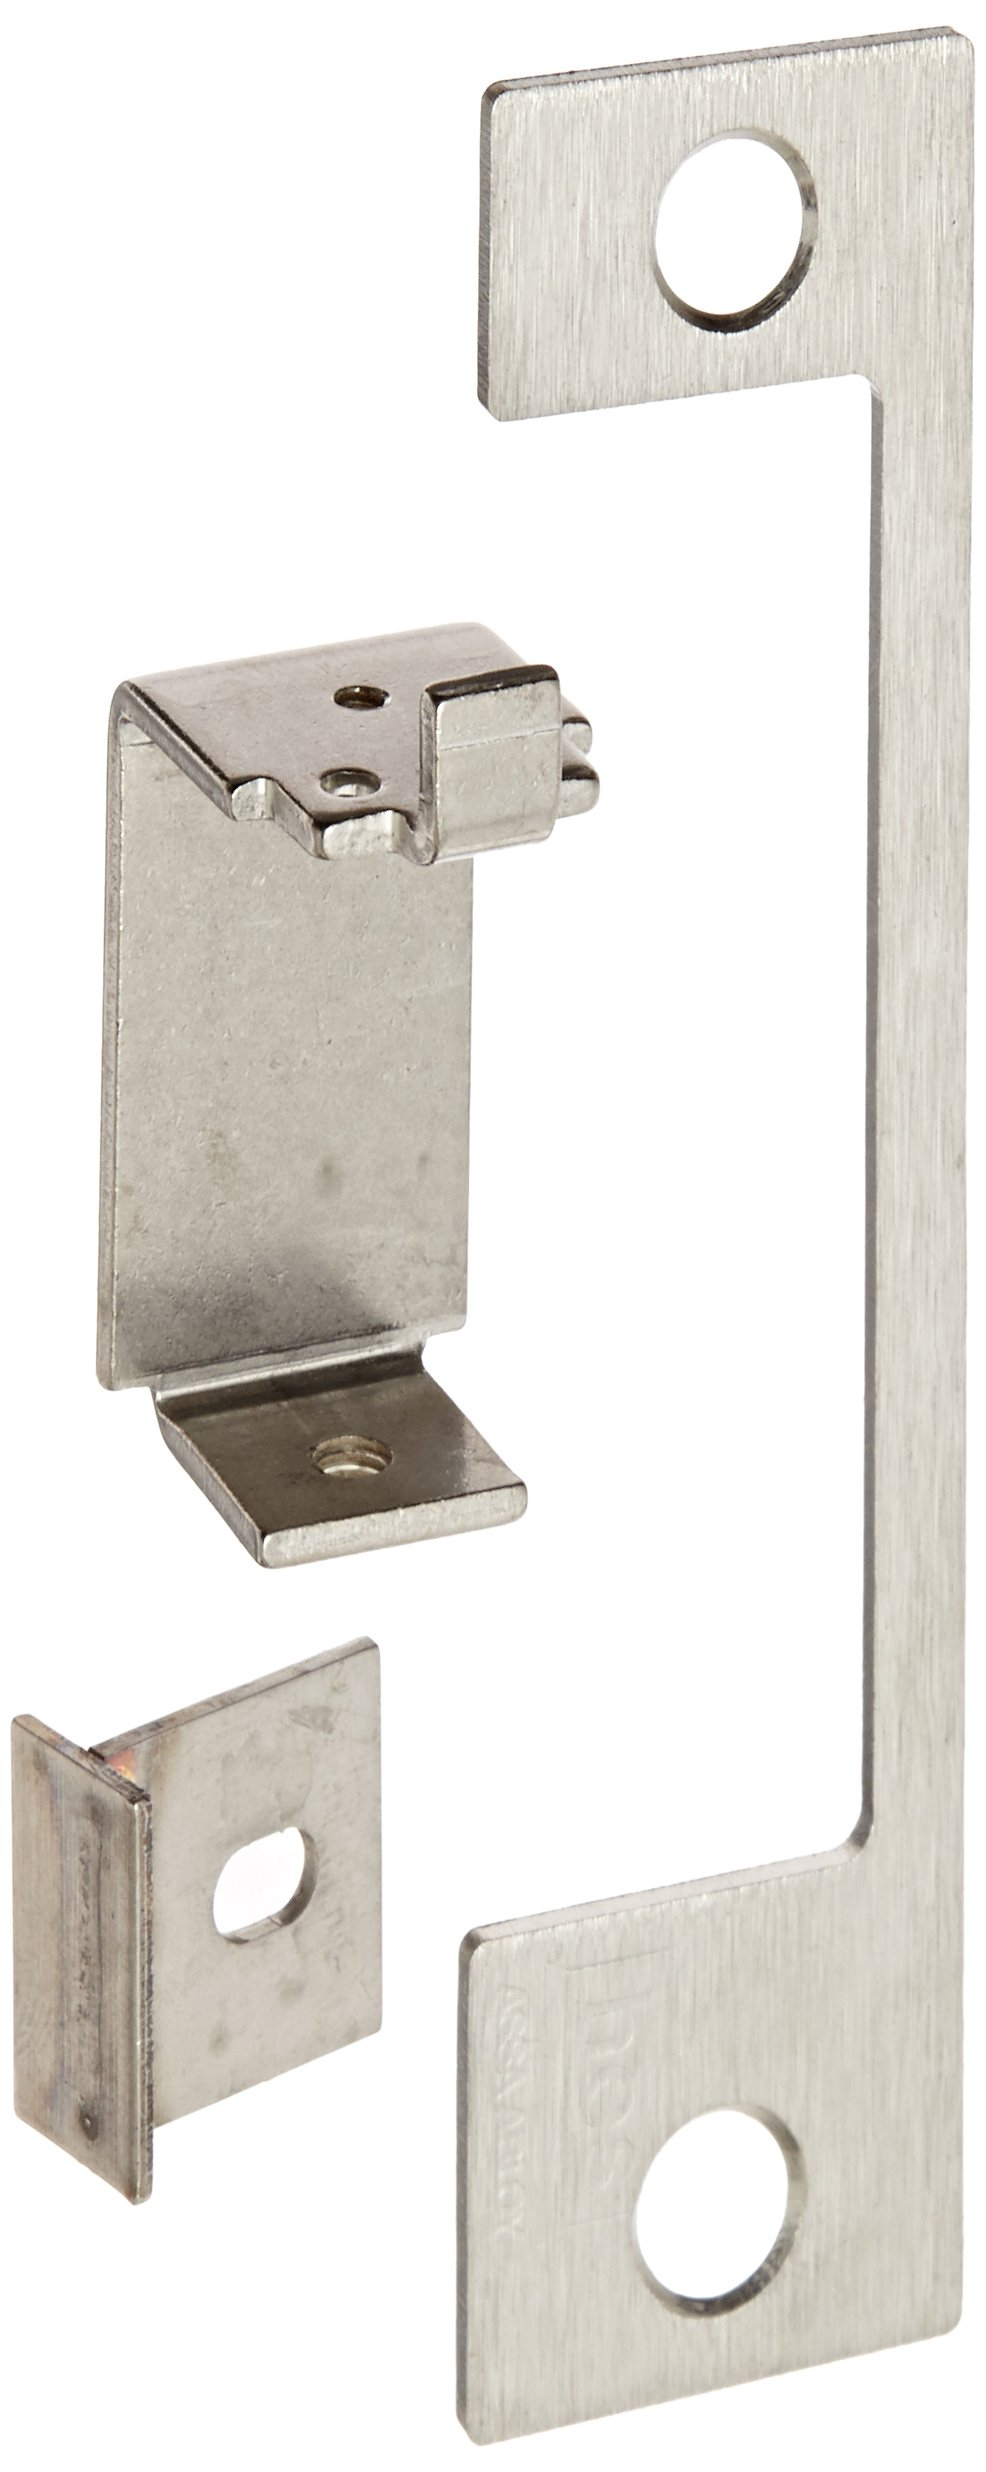 HES Stainless Steel HTD Faceplate for 1006 Series Electric Strikes for Mortise Lockset with Center Lined Deadlatch, Satin Stainless Steel Finish